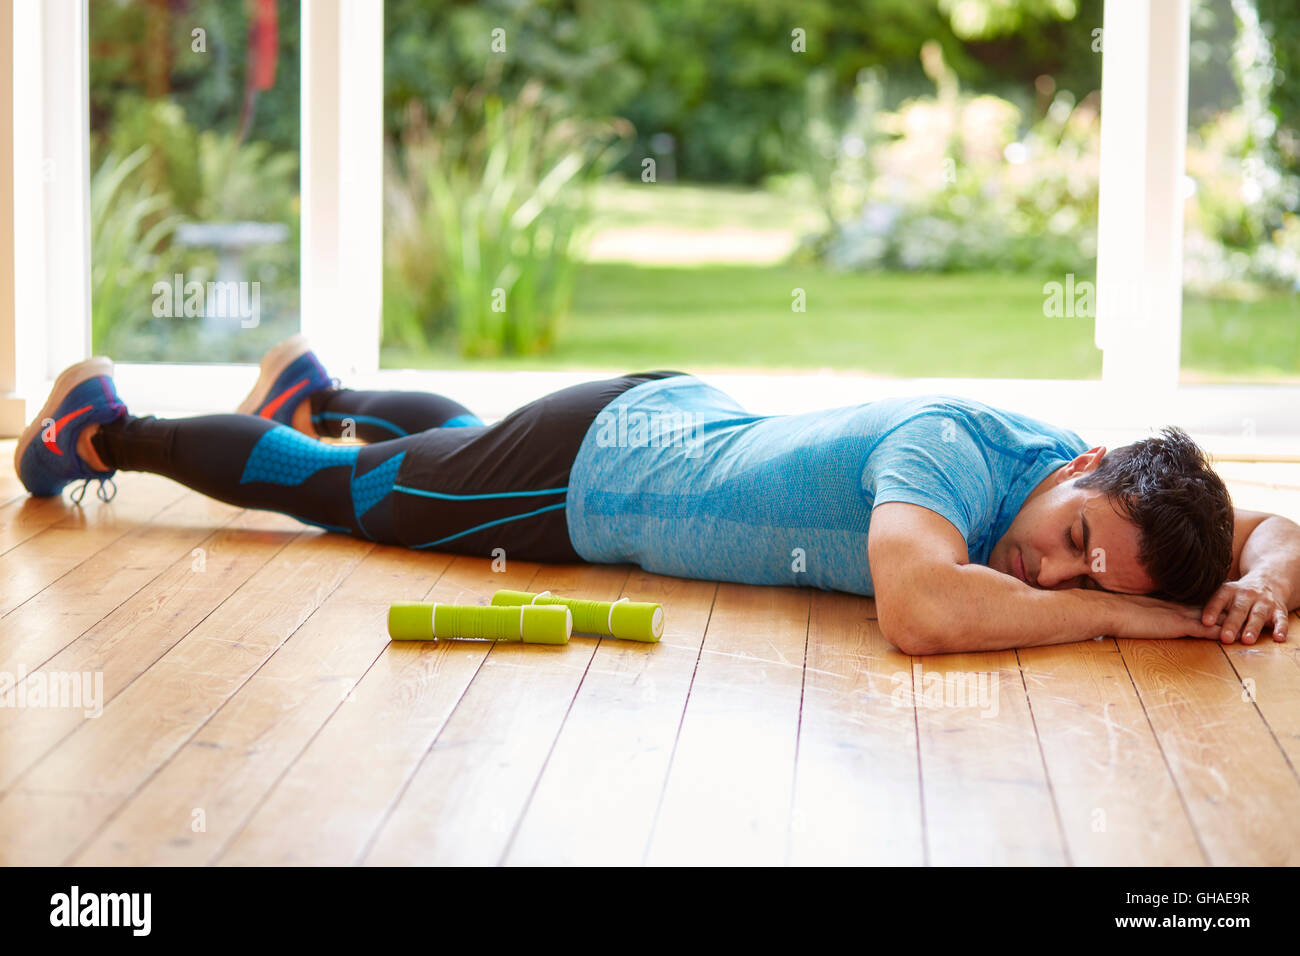 Man laid out exhausted after exercising - Stock Image